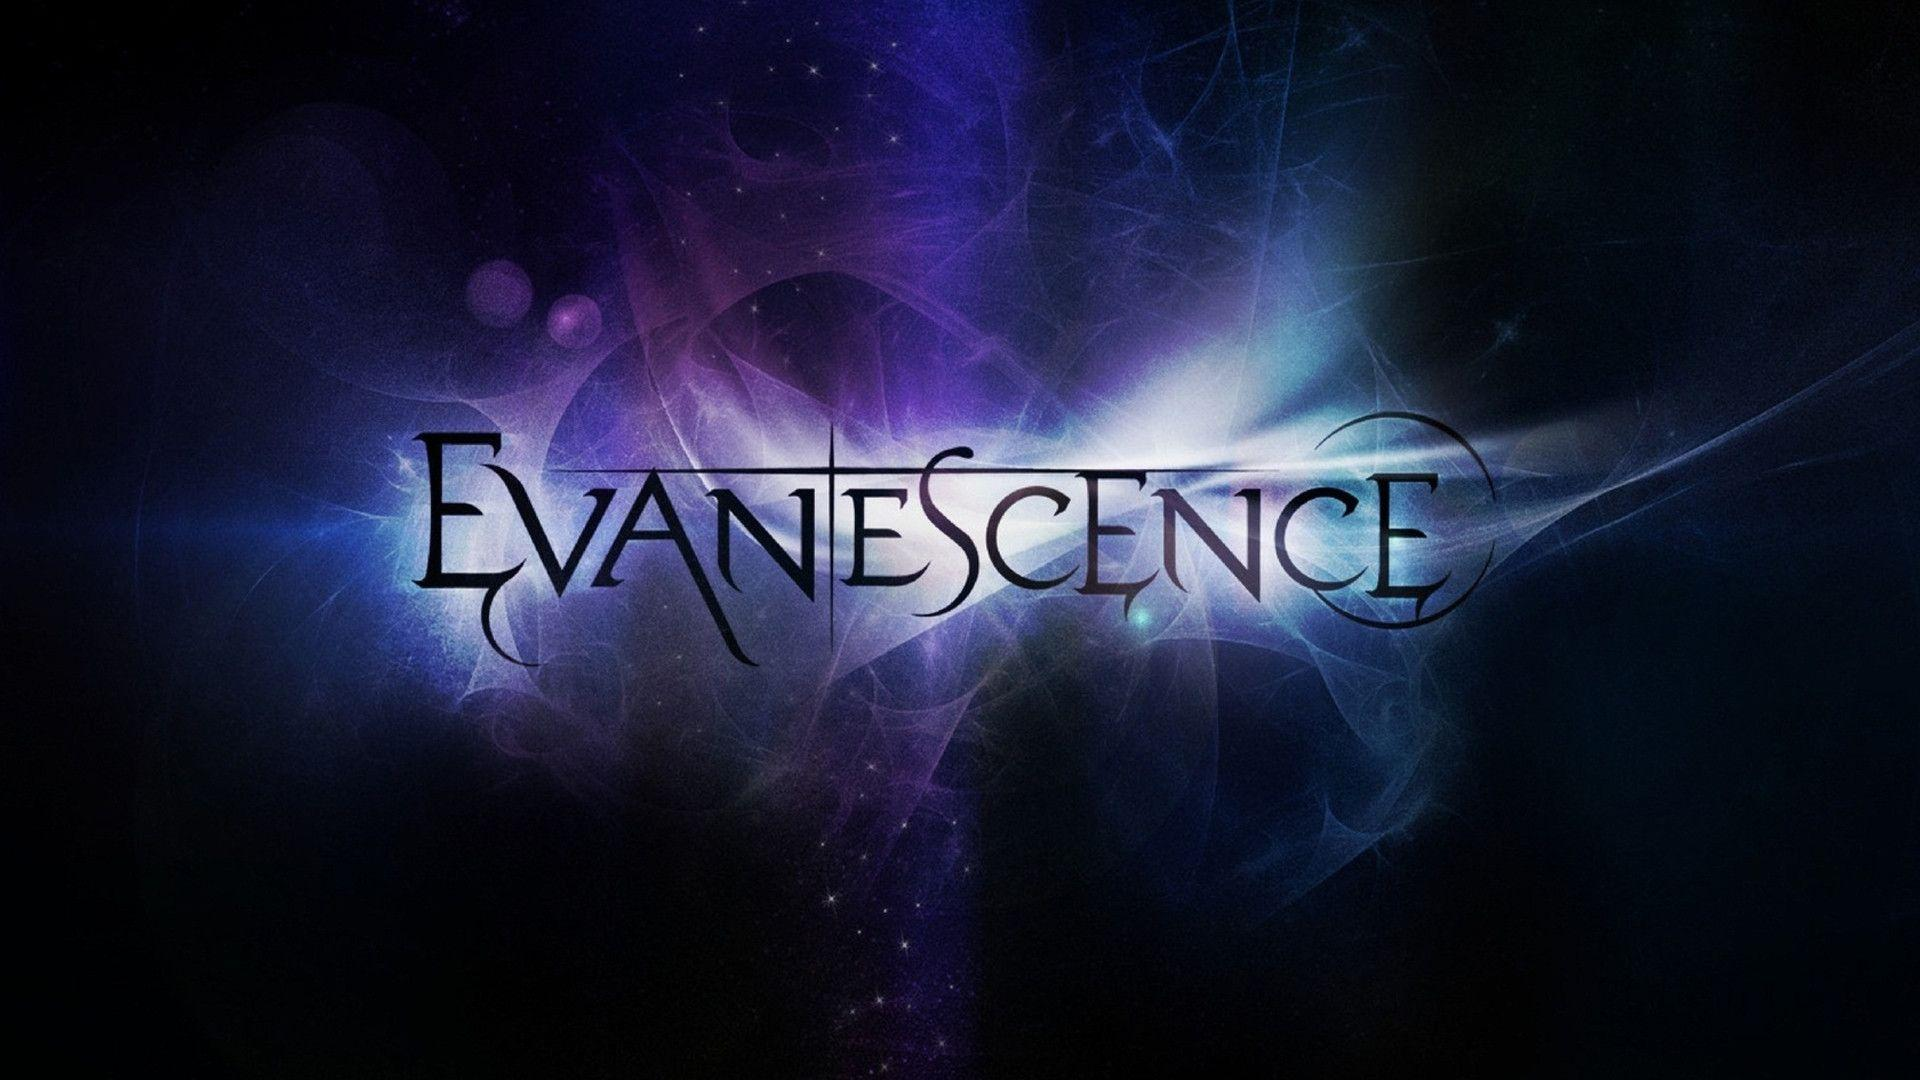 Photo Collection Evanescence Logo Wallpaper 2016 1920x1080